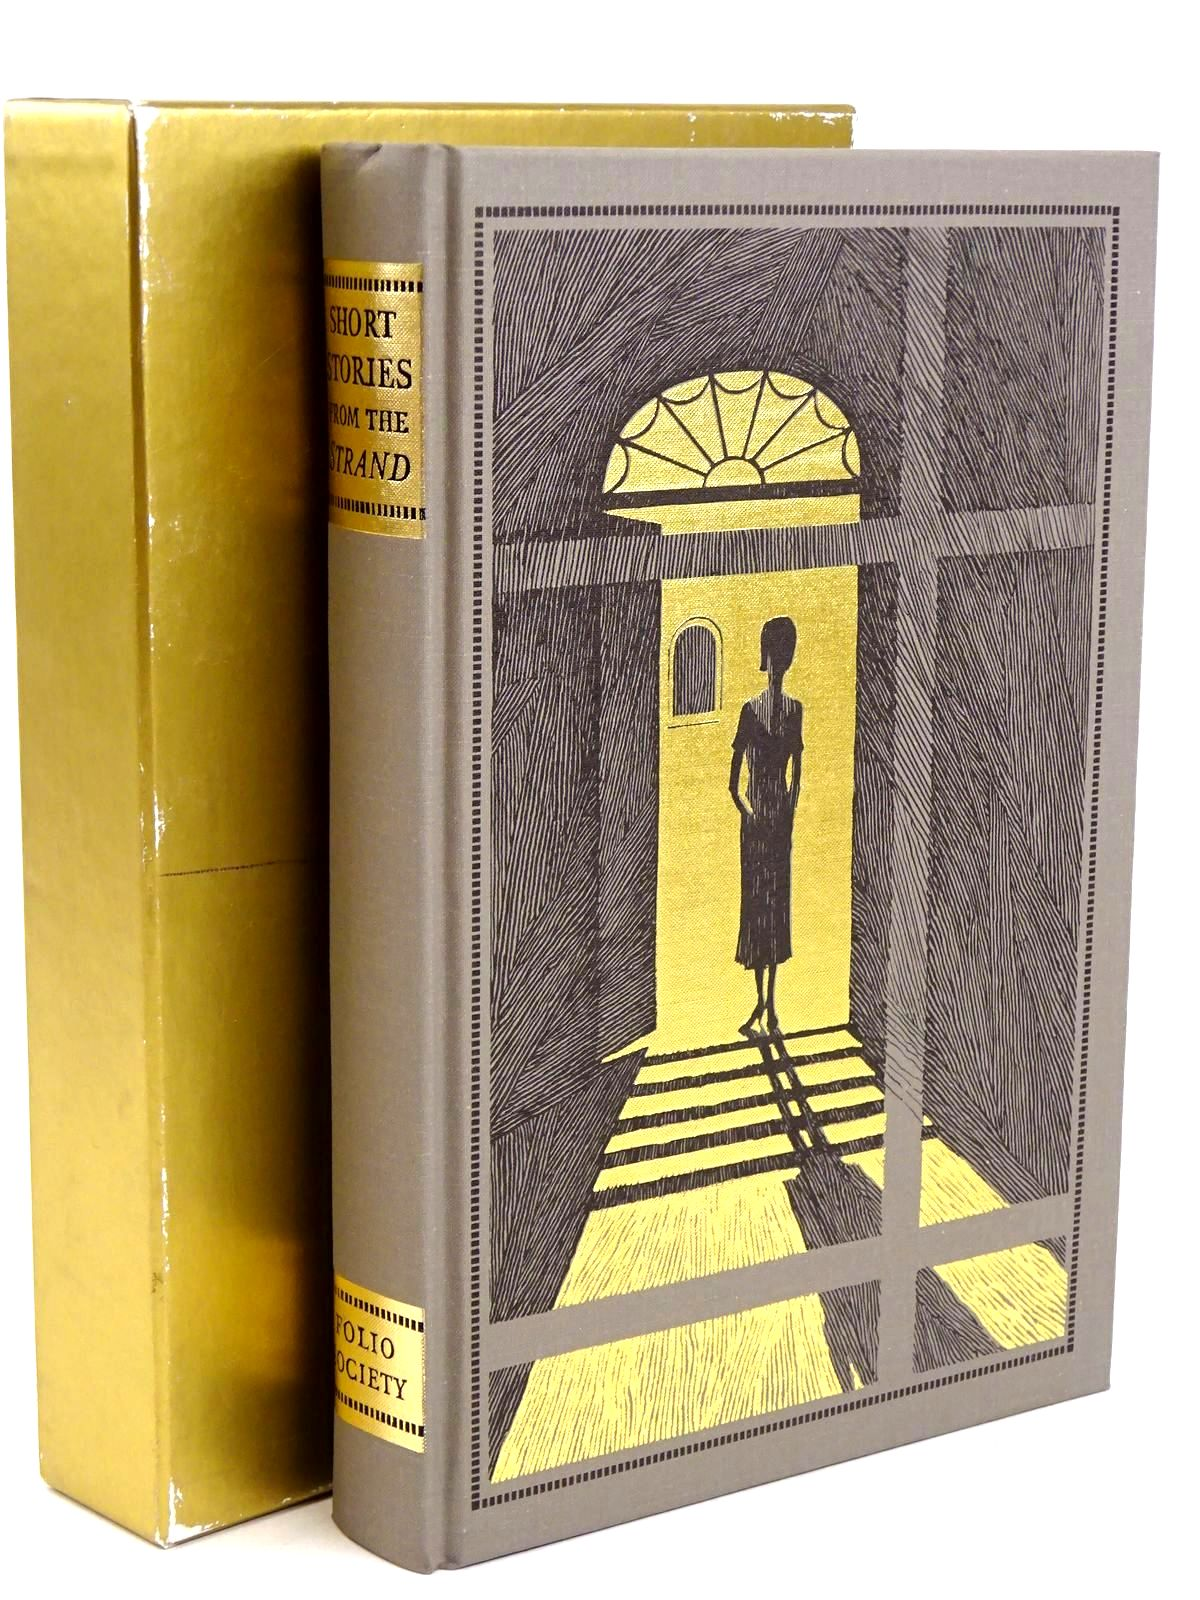 Photo of SHORT STORIES FROM THE 'STRAND' written by Beare, Geraldine illustrated by Eccles, David published by Folio Society (STOCK CODE: 1318452)  for sale by Stella & Rose's Books